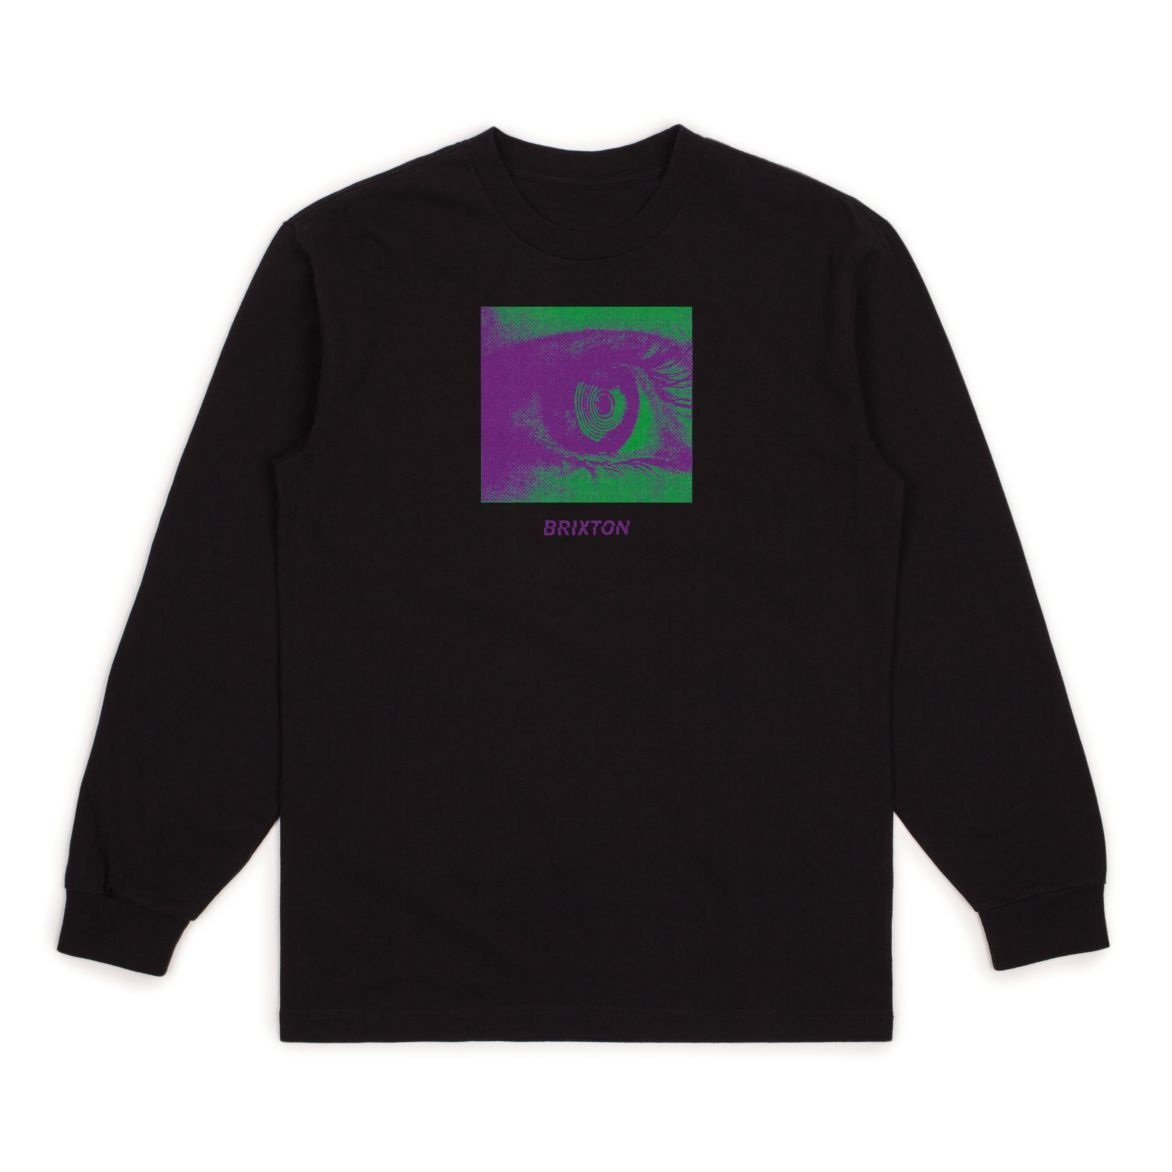 "BRIXTON ""HOLIDAY 2018\"" 入荷です!_b0121563_16235489.jpg"